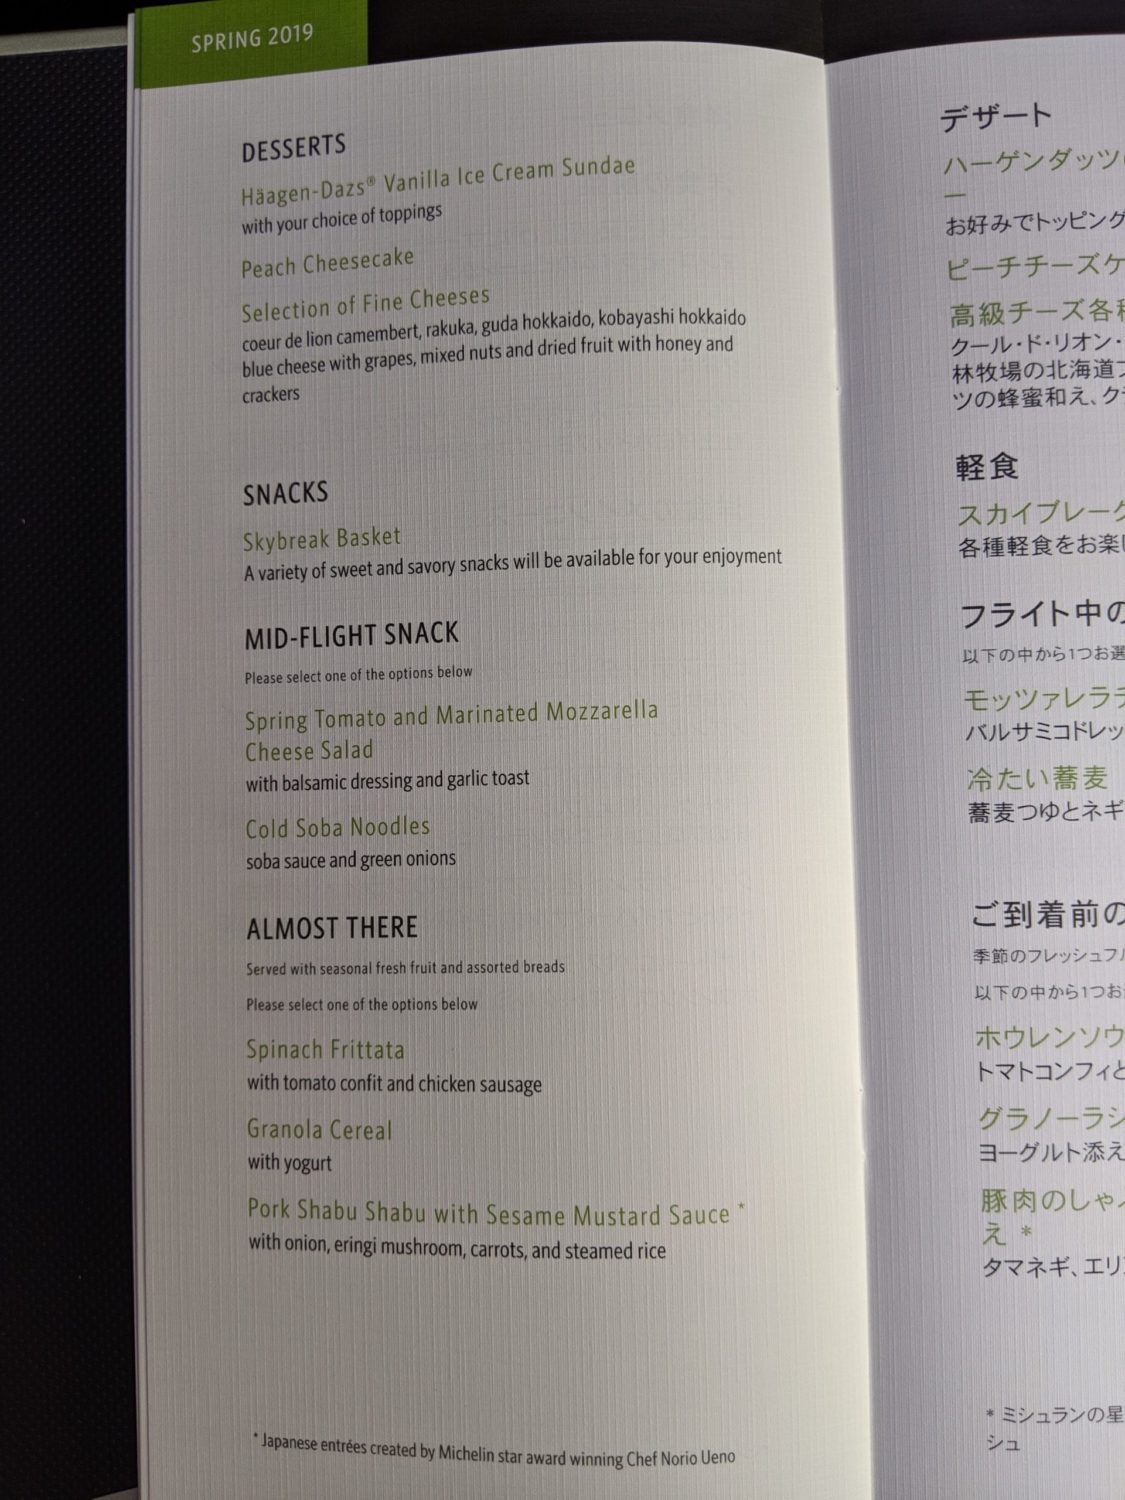 Delta One suites menu